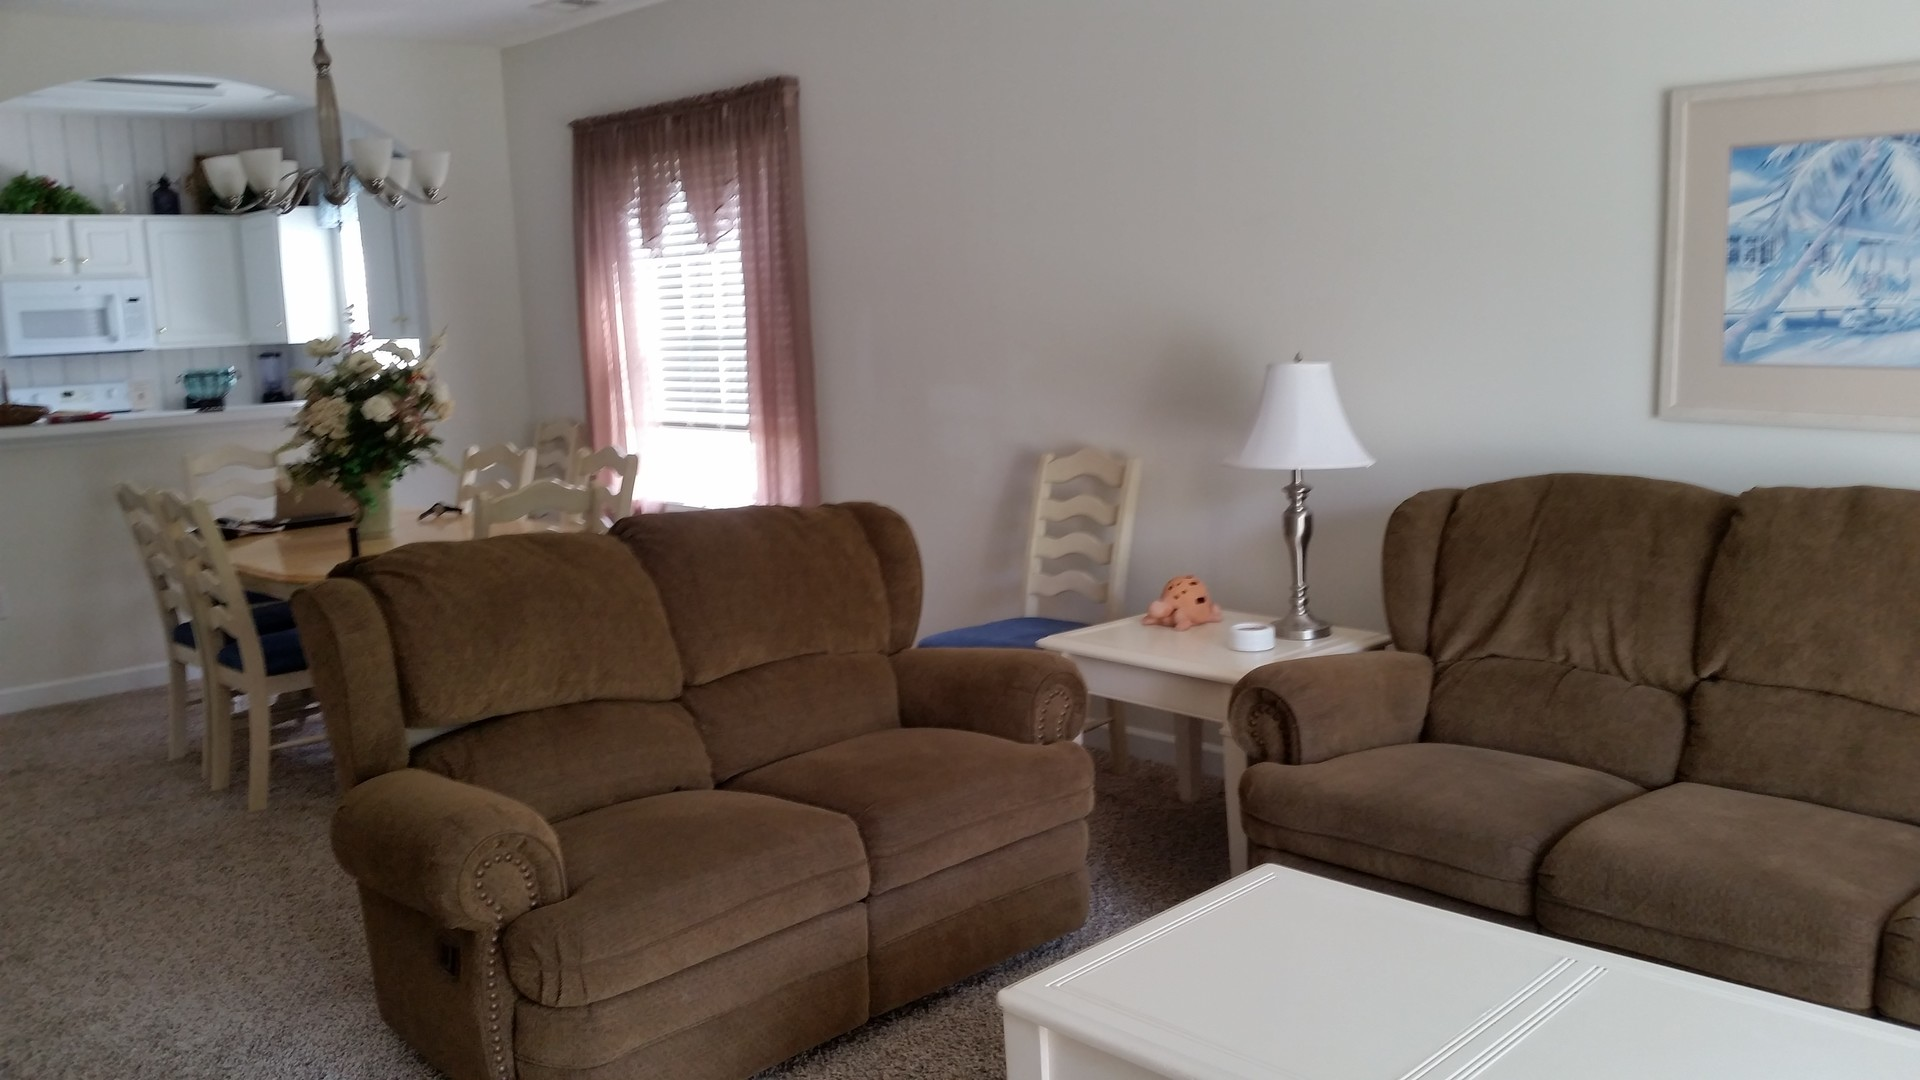 3 Bed 2 Bath Furnished Condo At Barefoot Resort In Ironwood Myrtle Beach Rental